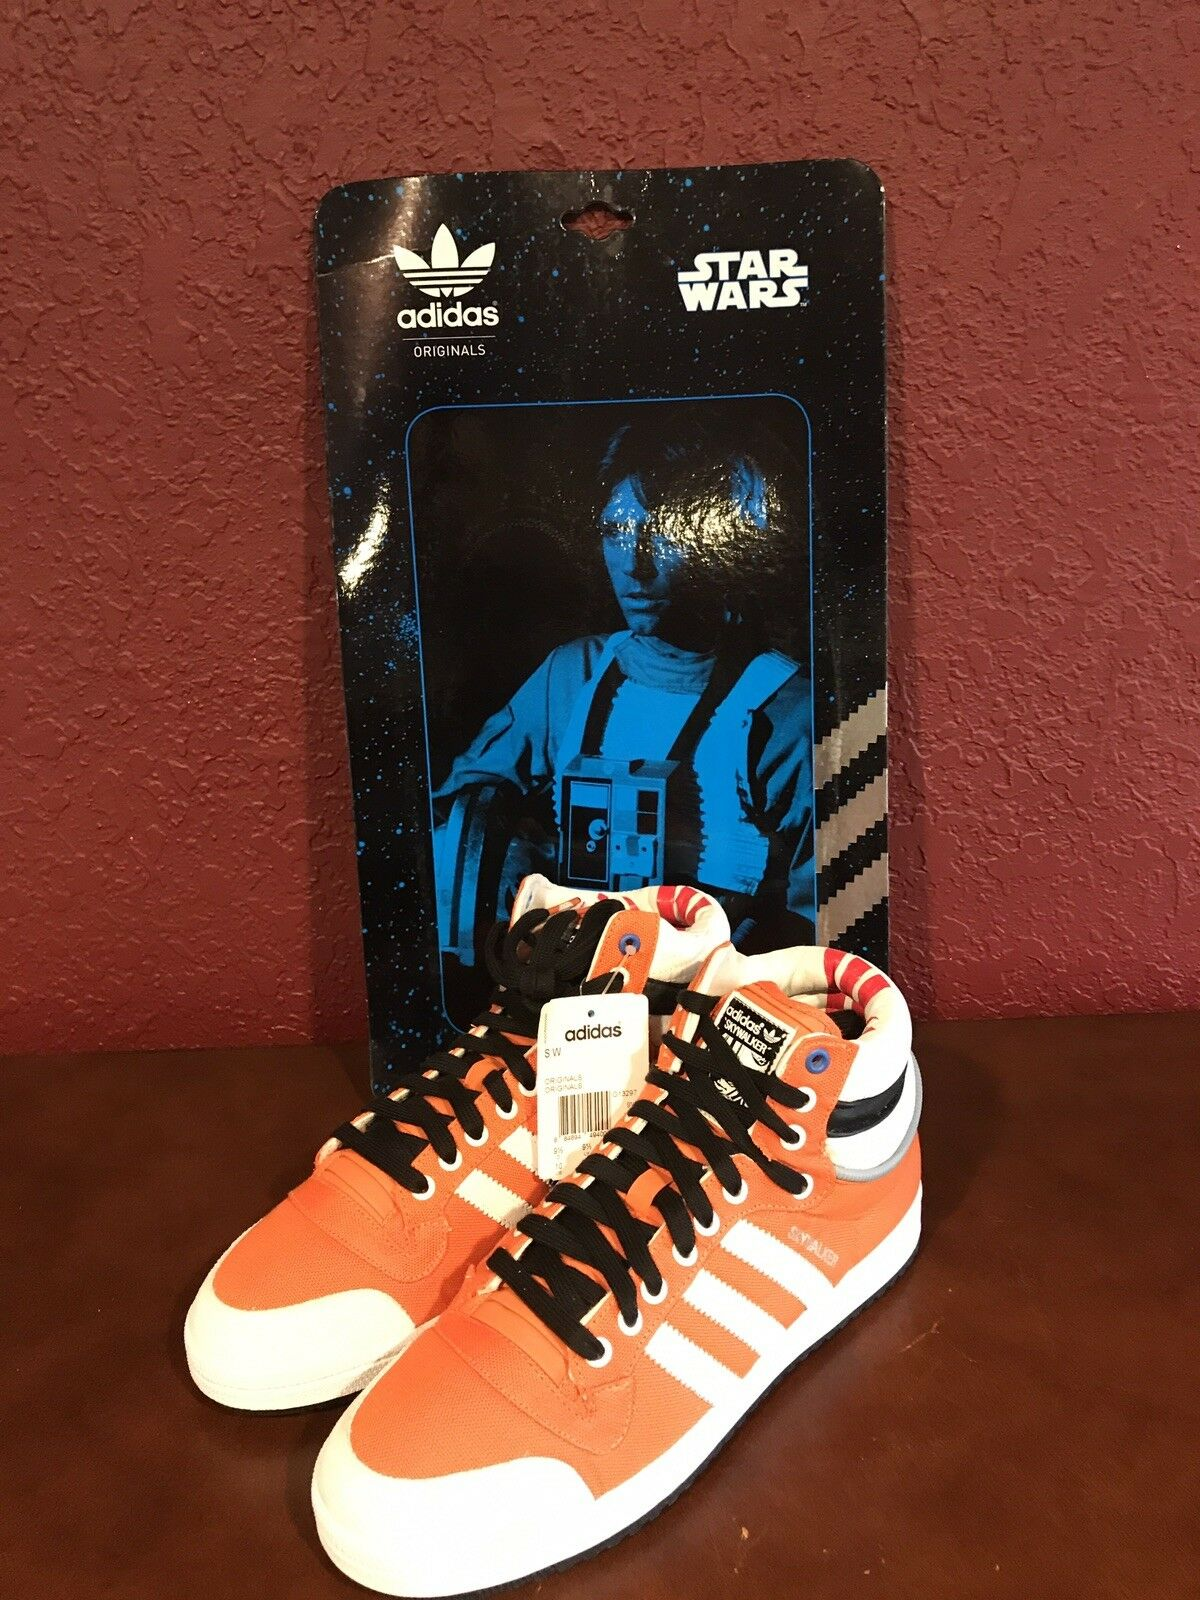 2009 adidas star - wars - skywalker limited schuhe turnschuhe 10 deadstock limited skywalker edition new ccc89b